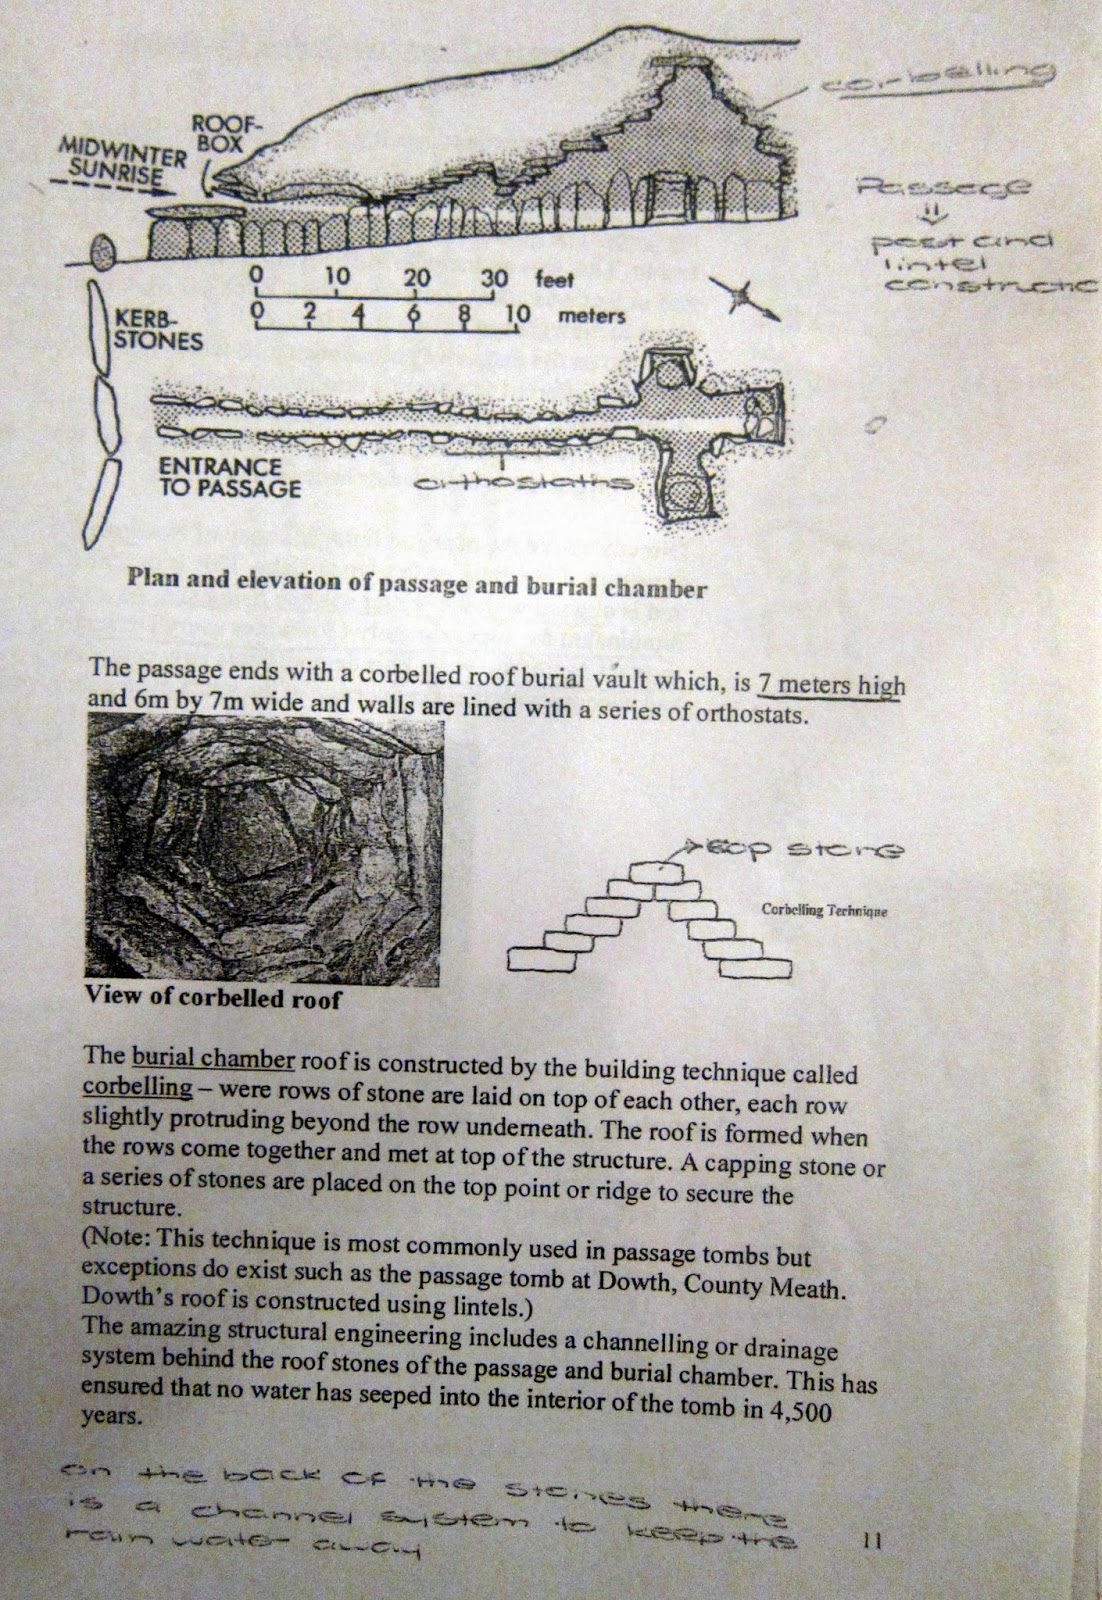 leaving cert essay on newgrange Introduction newgrange is a passage grave - a type of megalithic ( large stone)  tomb consisting of a narrow passage leading to a chamber where human.